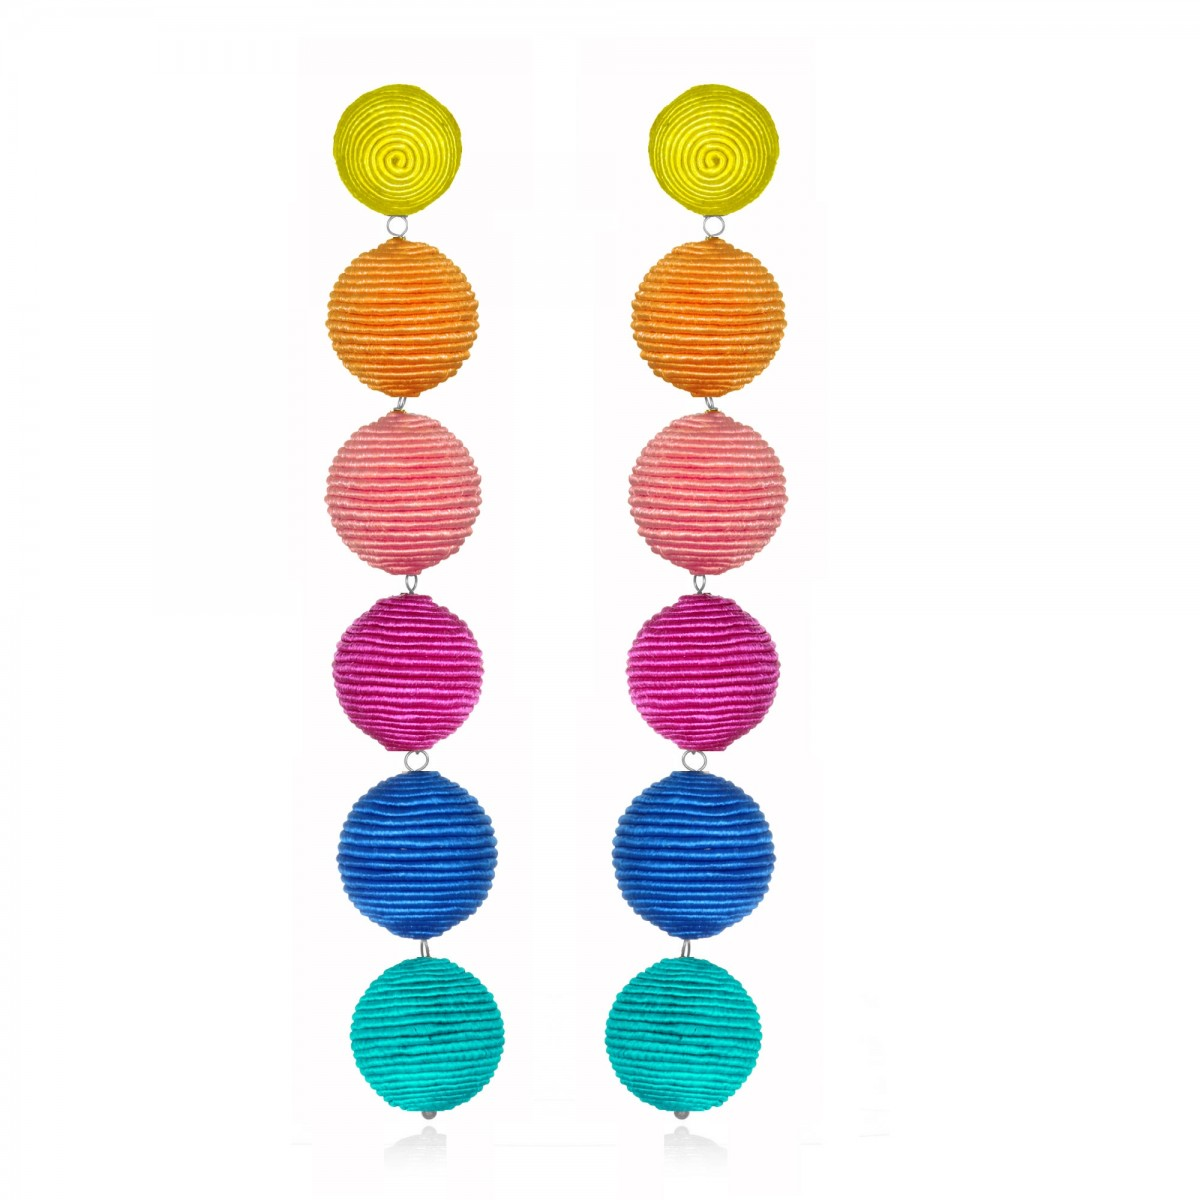 Rainbow Gumball Earrings by SUZANNA DAI